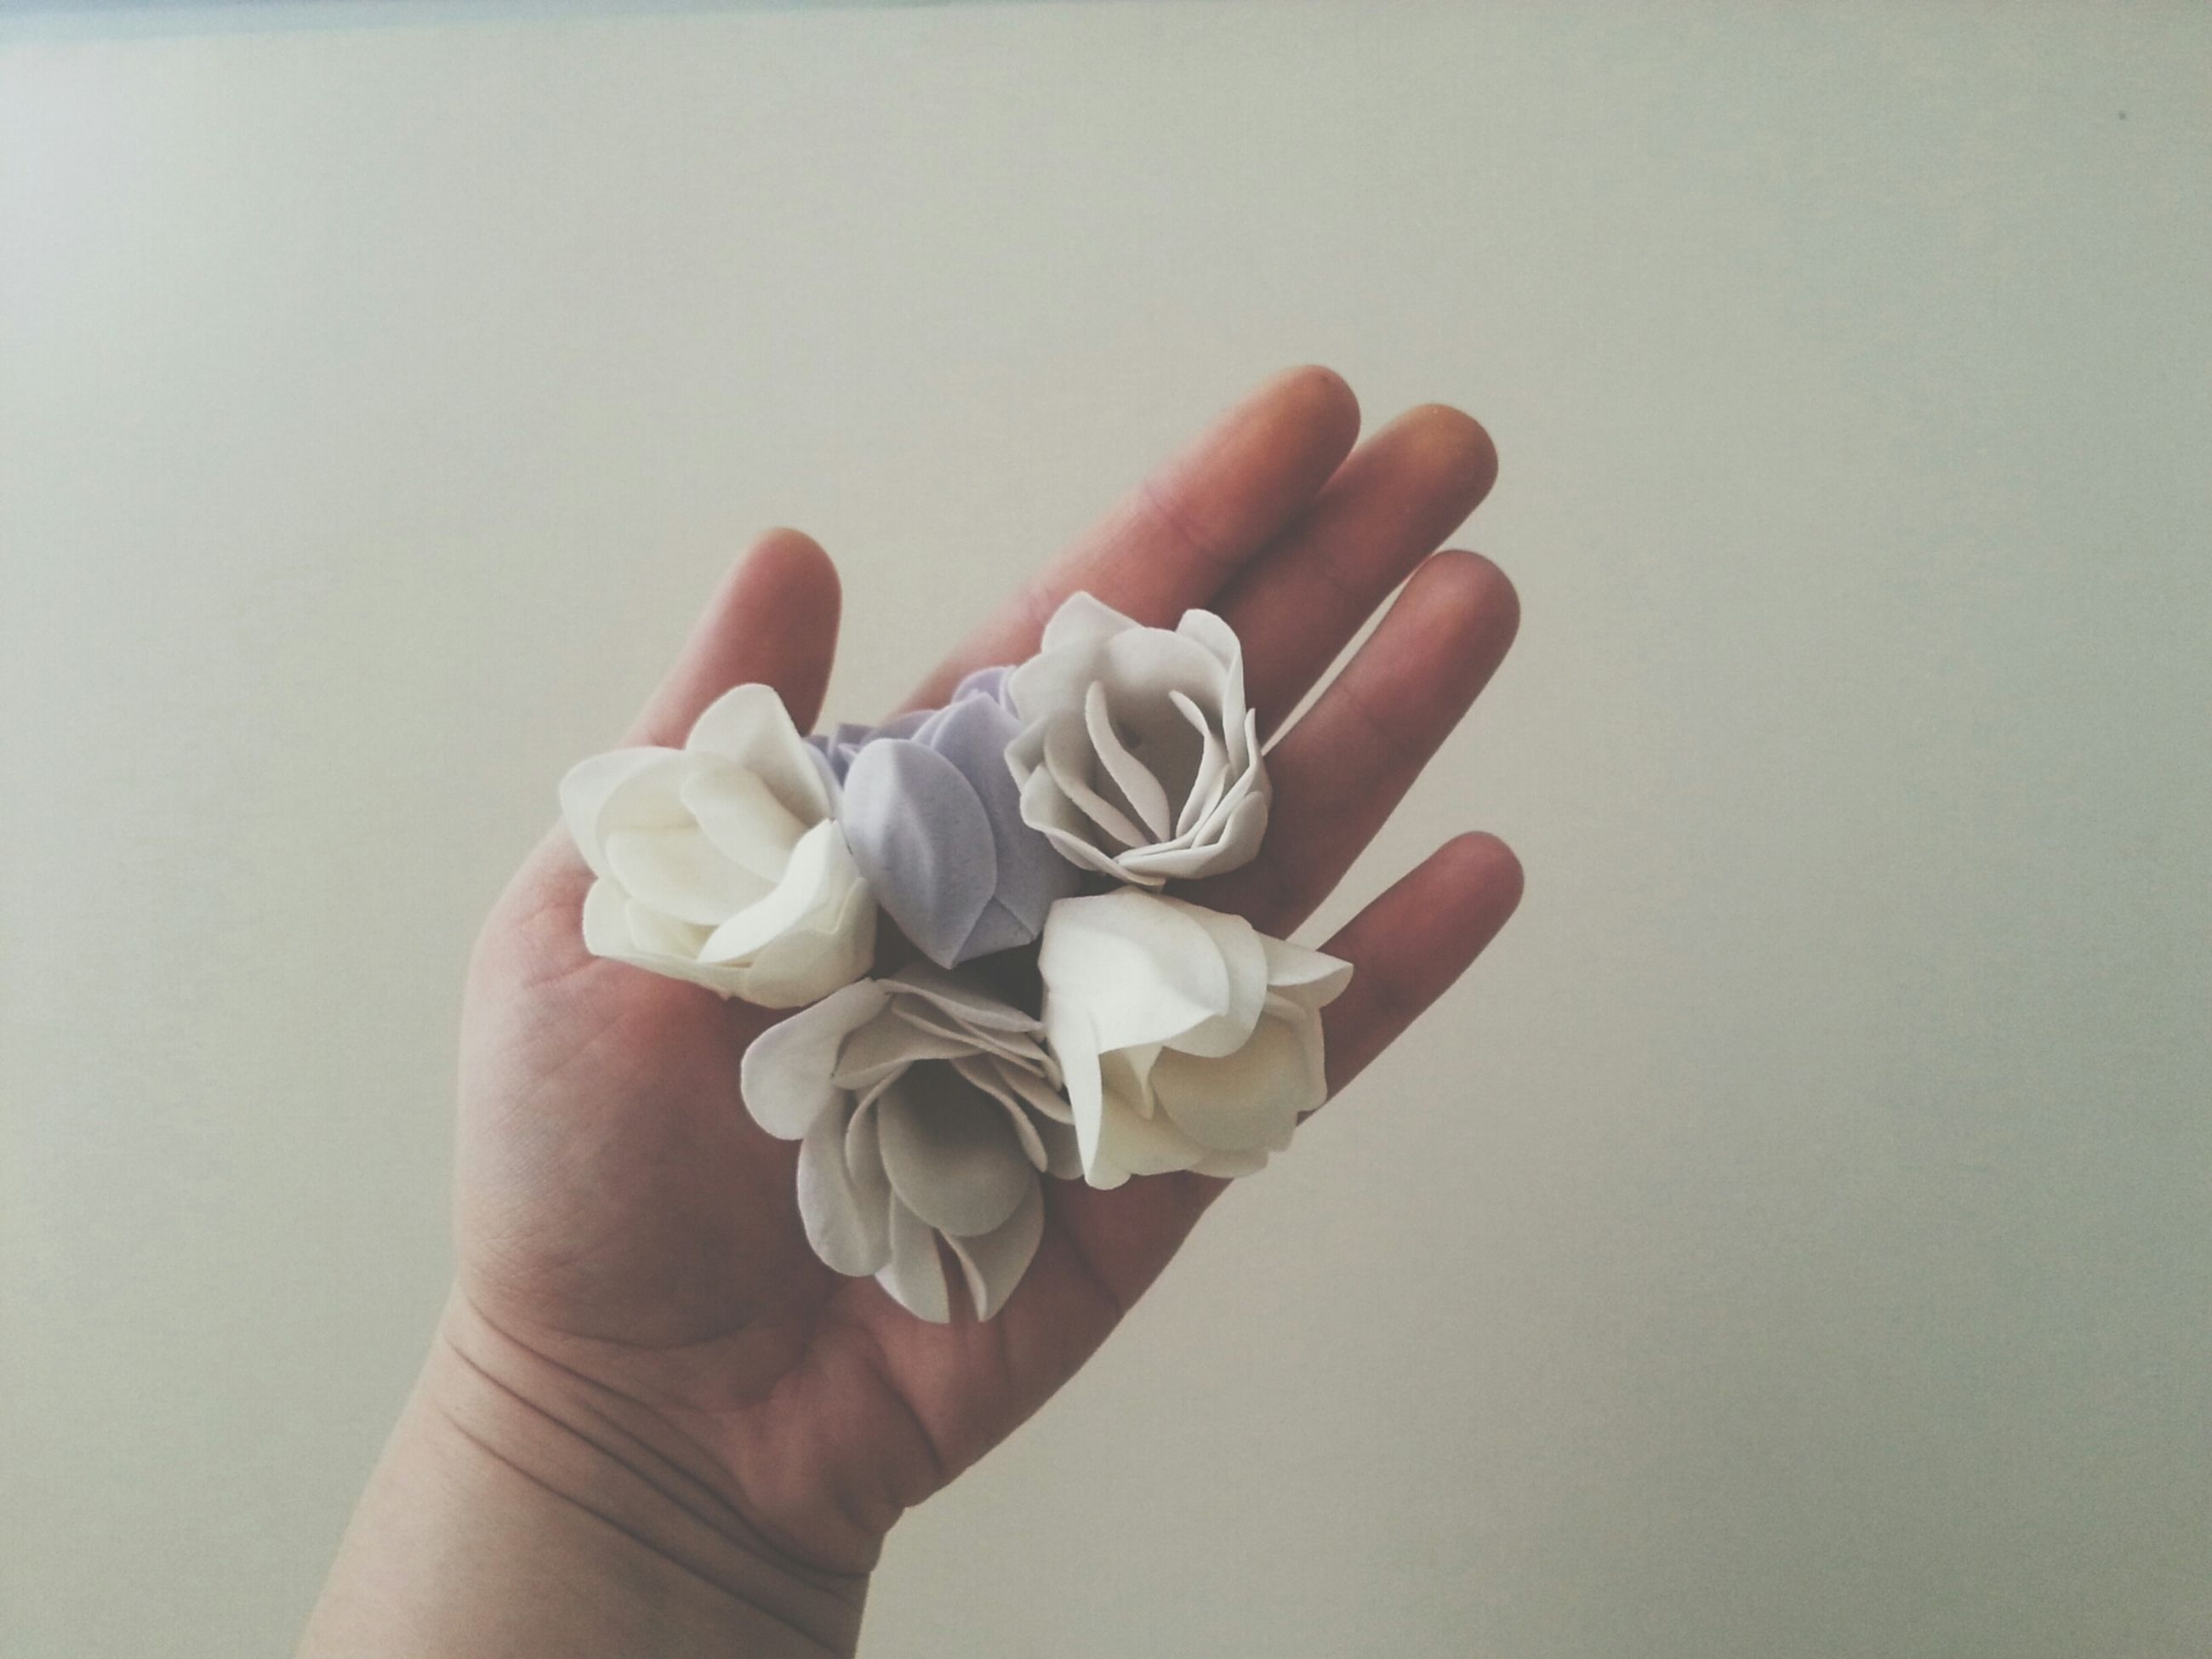 person, part of, studio shot, holding, human finger, indoors, white background, cropped, copy space, close-up, personal perspective, unrecognizable person, white color, lifestyles, showing, wall - building feature